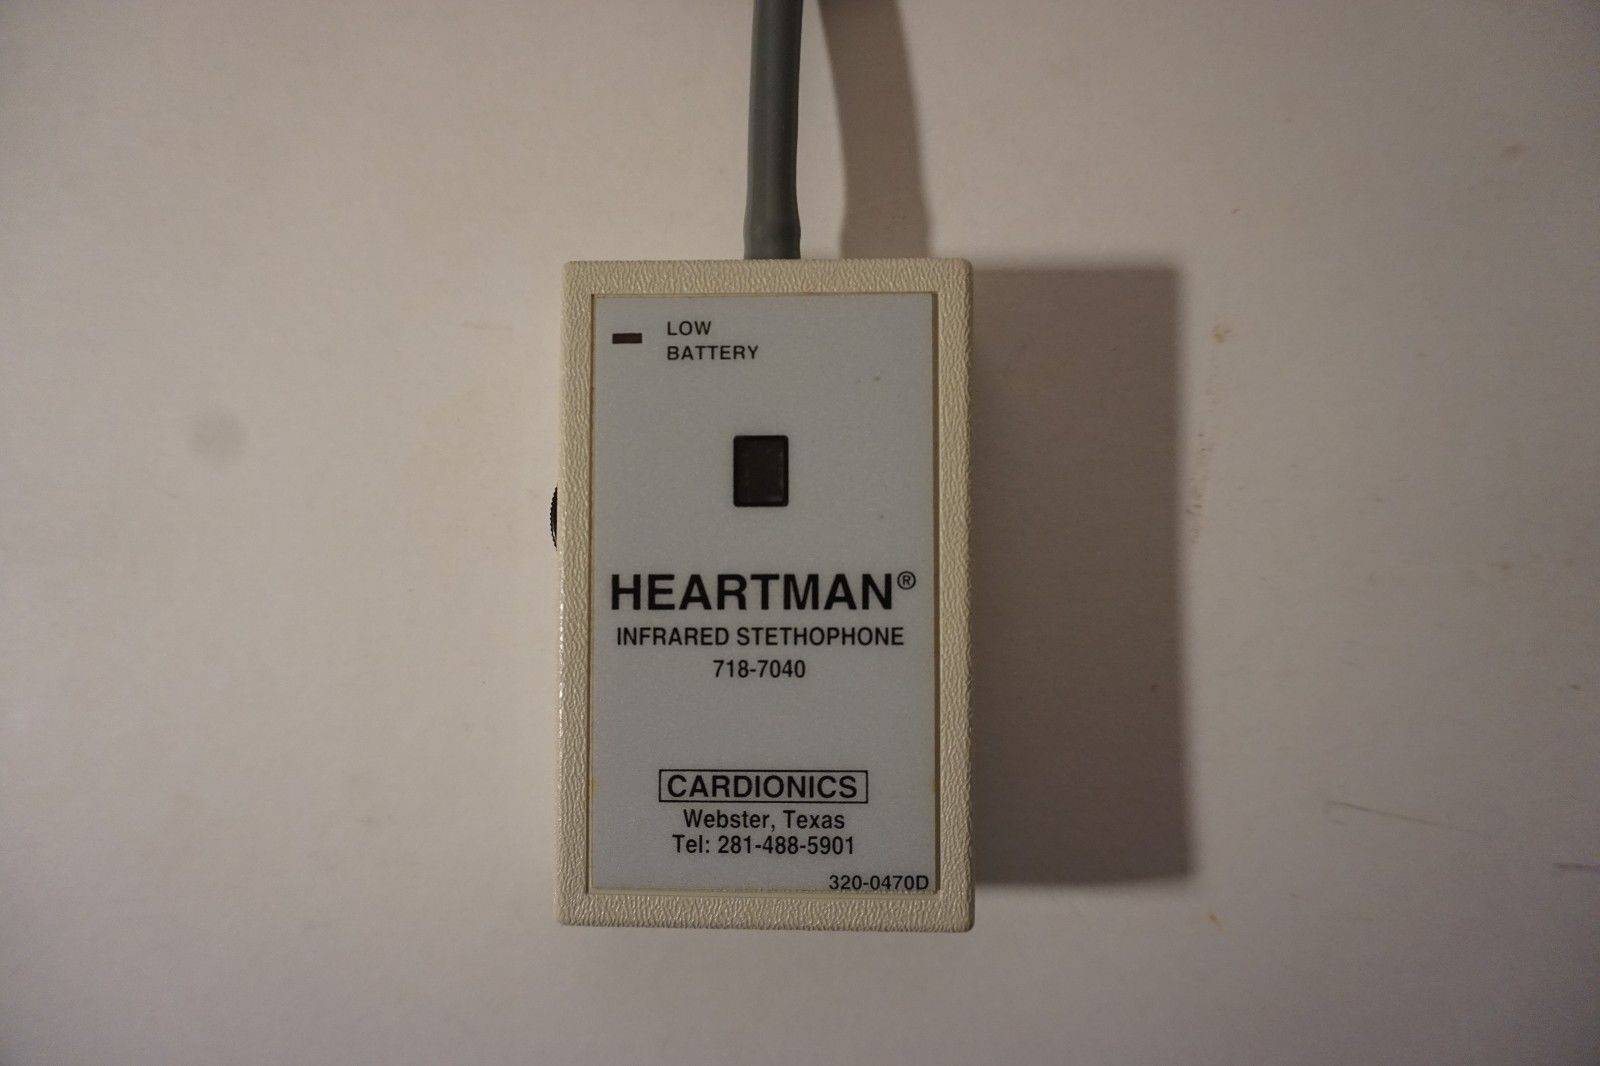 Lot of 120, Cardionics, Heartman MO/PN: 718-7040 Infrared Stethophone